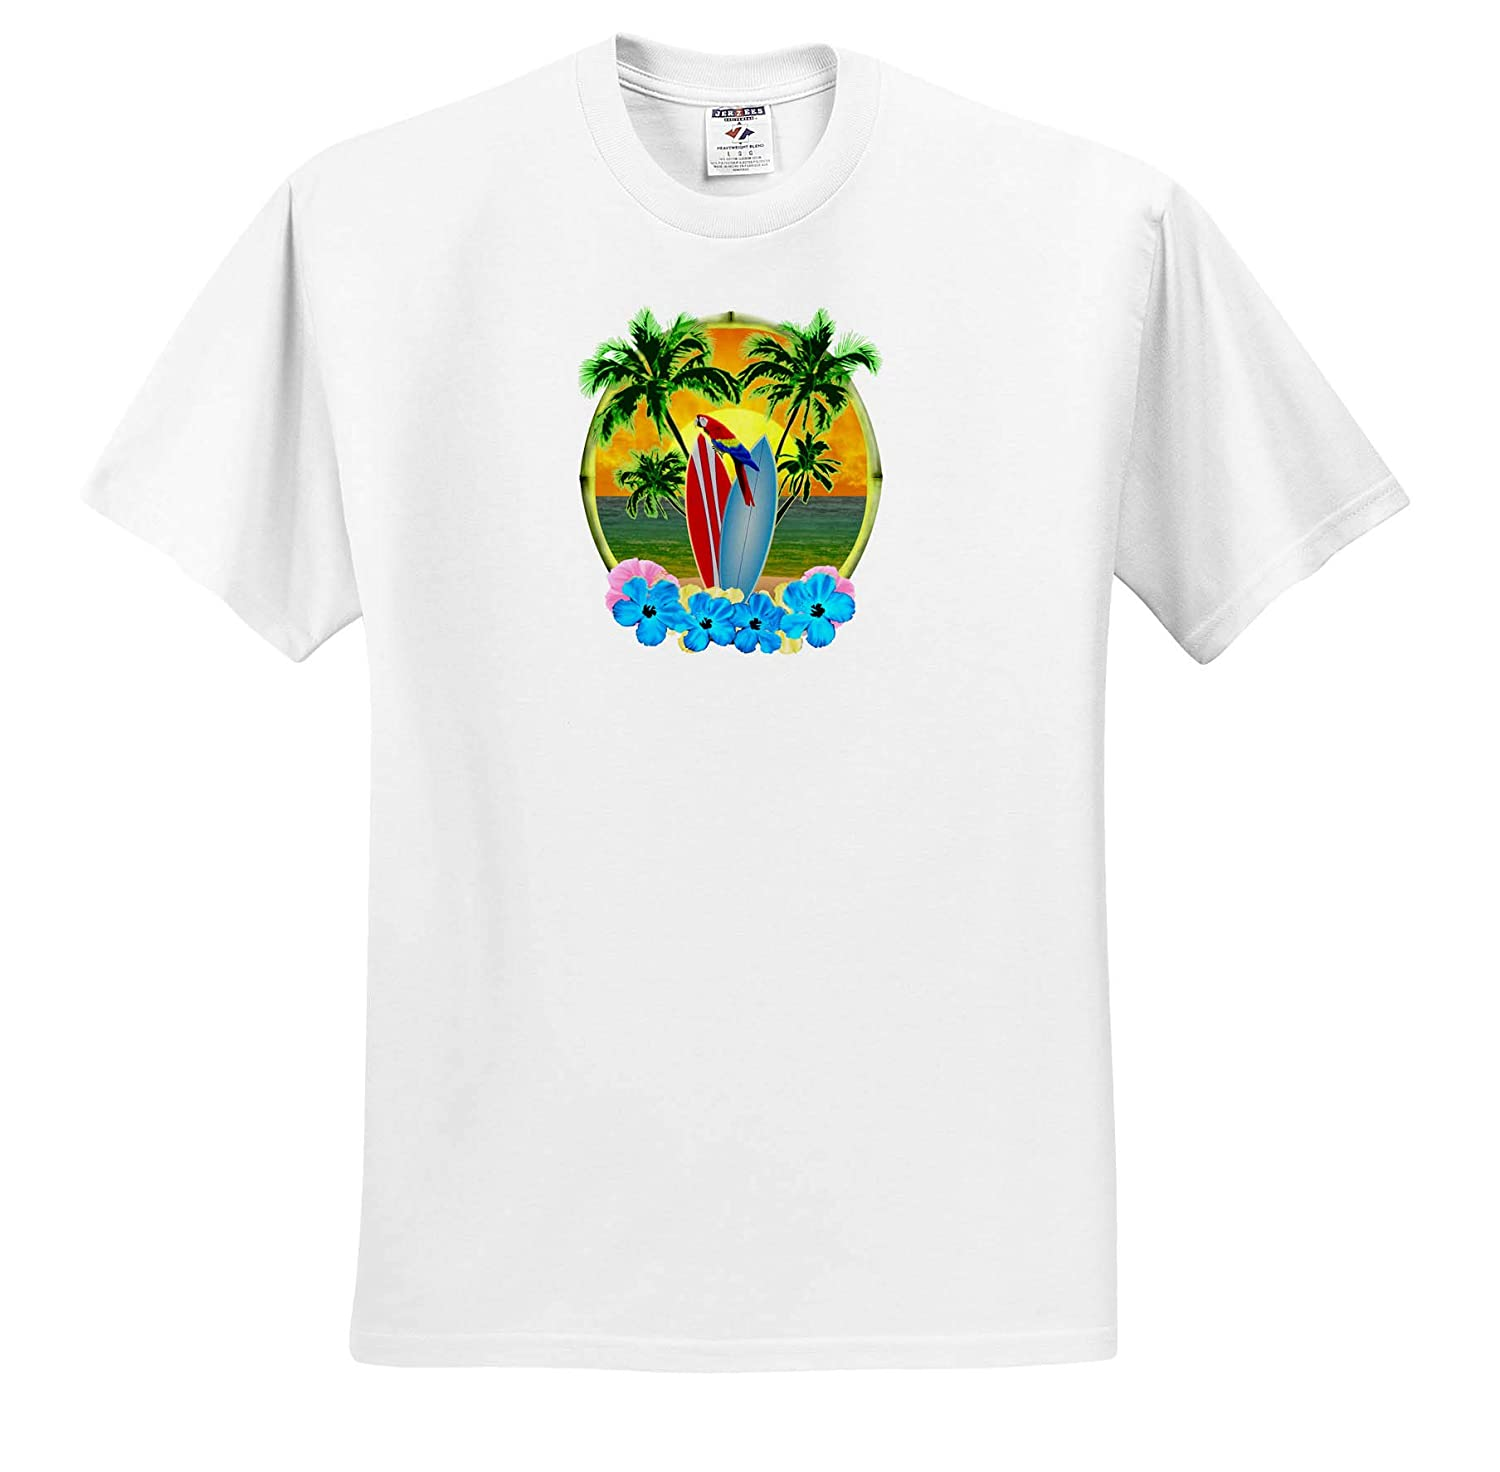 Tropical Parrot Perched on Surfboards and a Beach Sunset - T-Shirts Islands 3dRose Macdonald Creative Studios